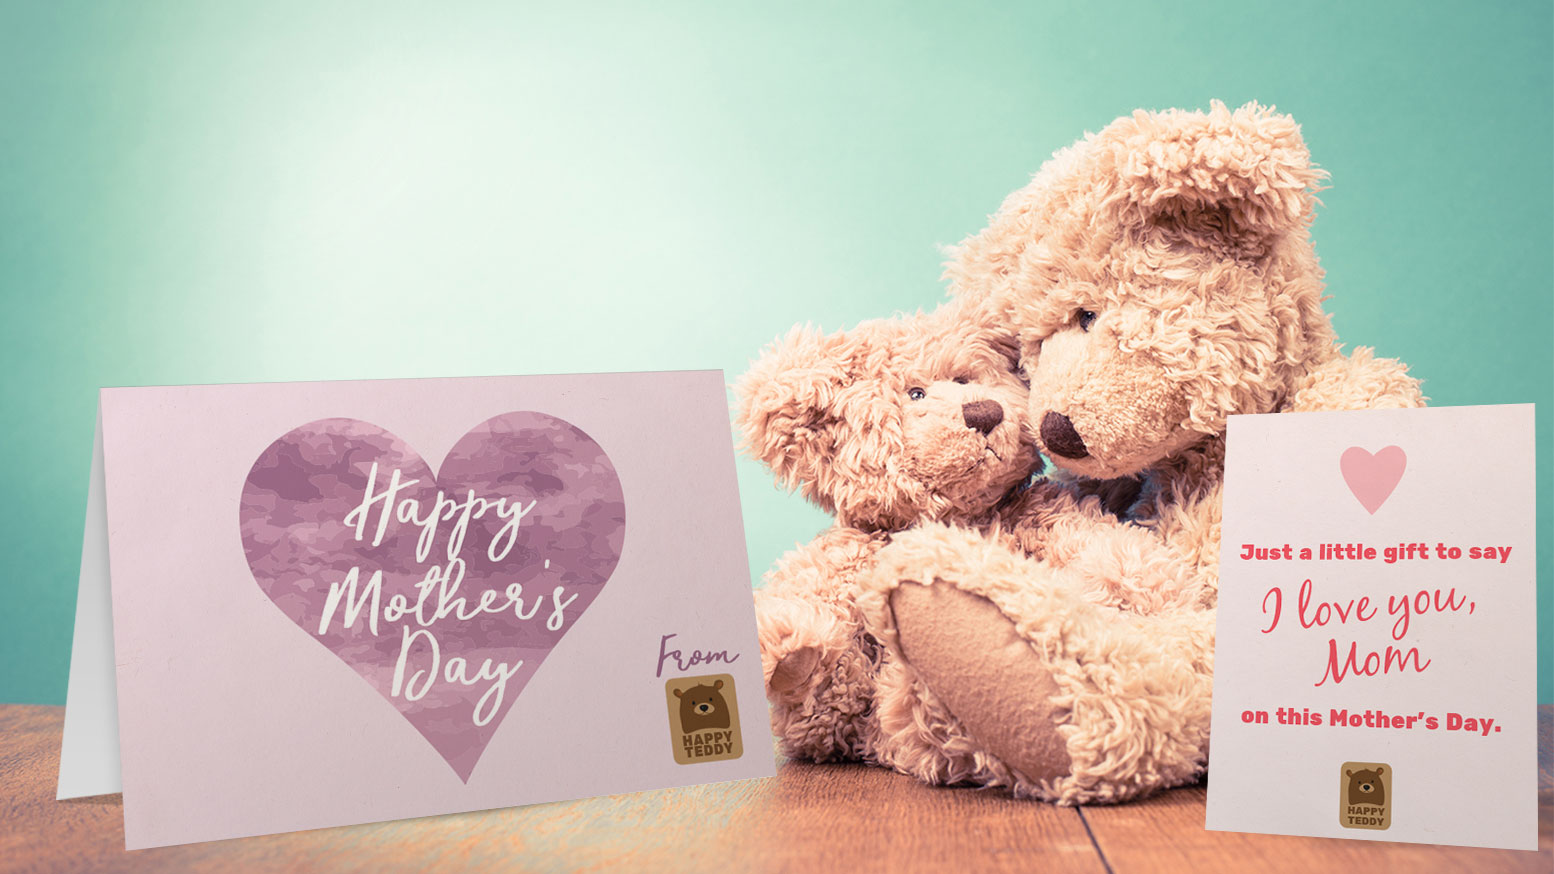 Heartwarming mother's day card ideas